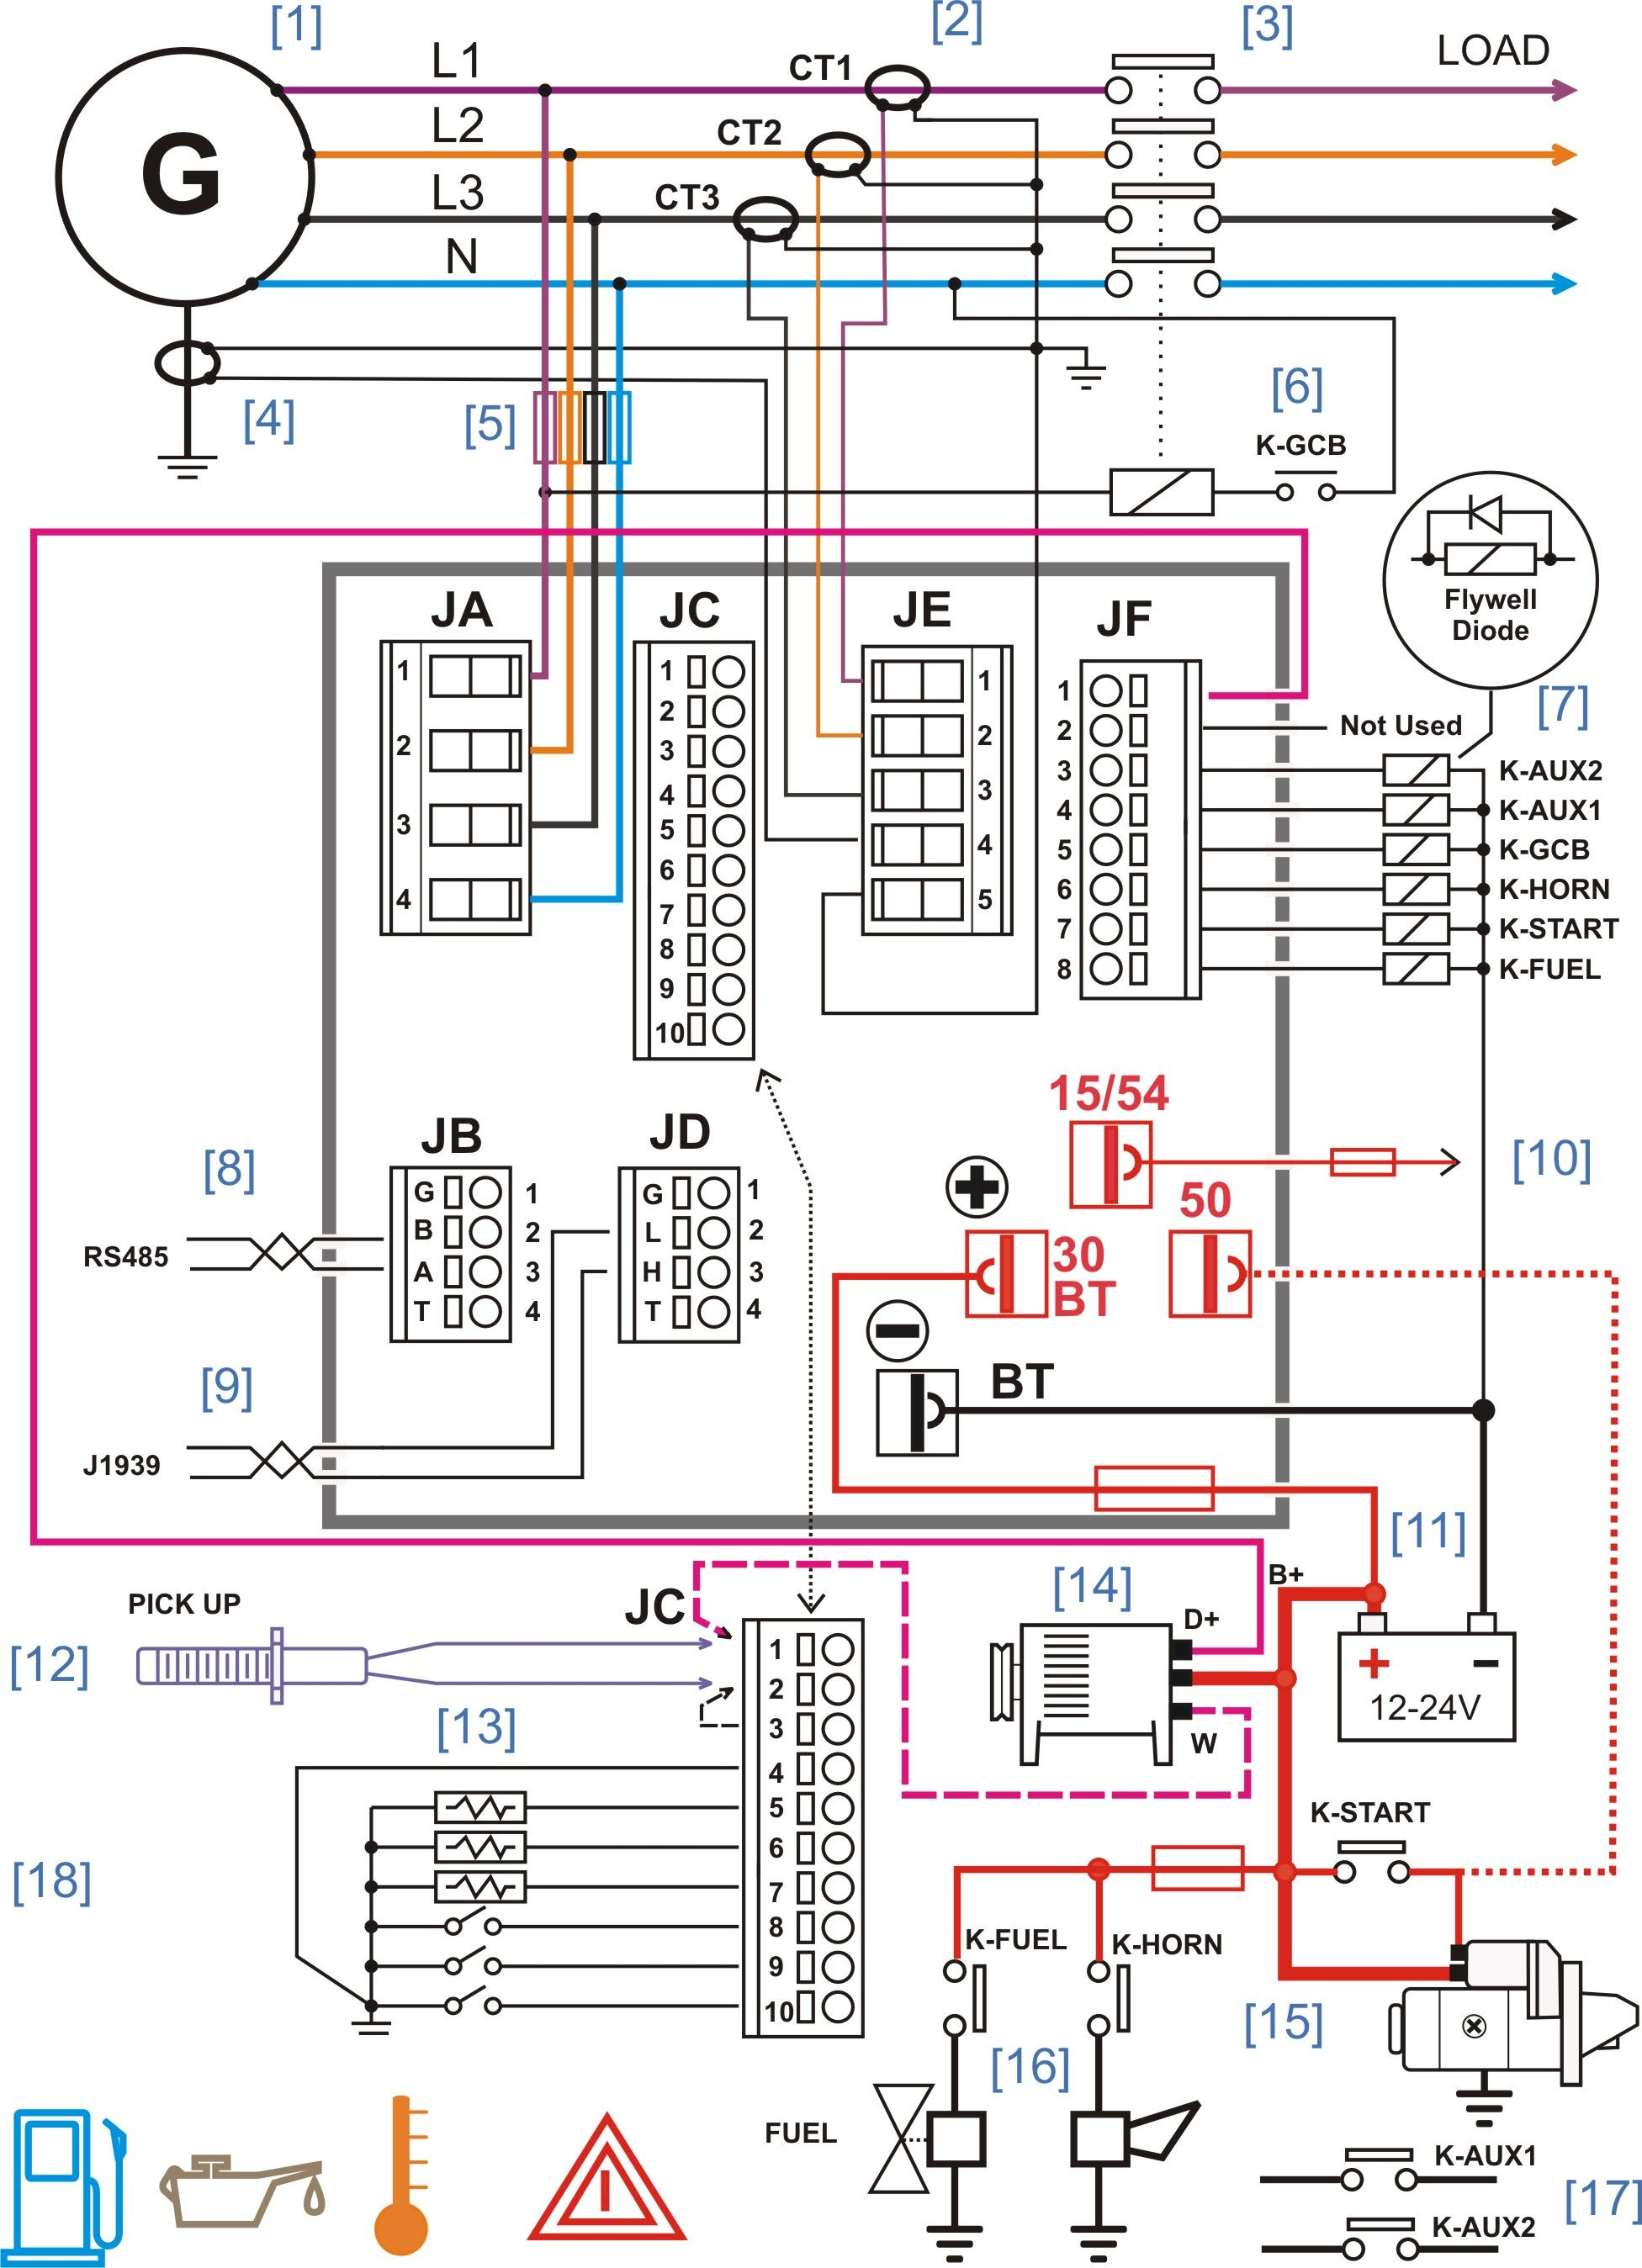 e32695bfa9986573569381a039ba42a6 diesel generator control panel wiring diagram gr pinterest wiring diagram for access control system at soozxer.org